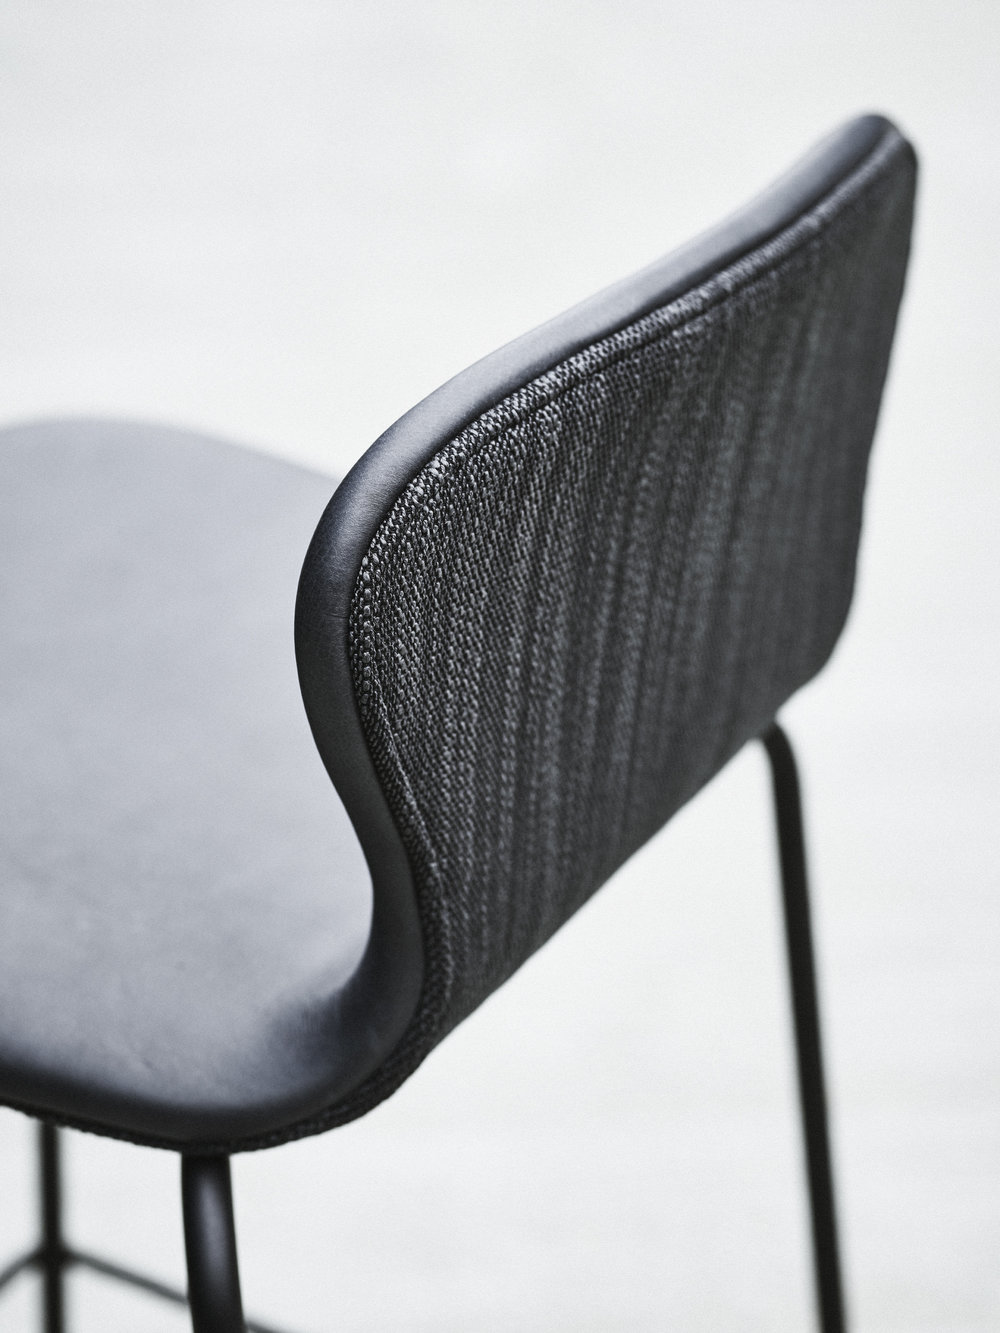 Nuance  Shadow grey  Leather from Sorensen Leather by Space Copenhagen &  Lila  from Kvadrat by Doshi Levien